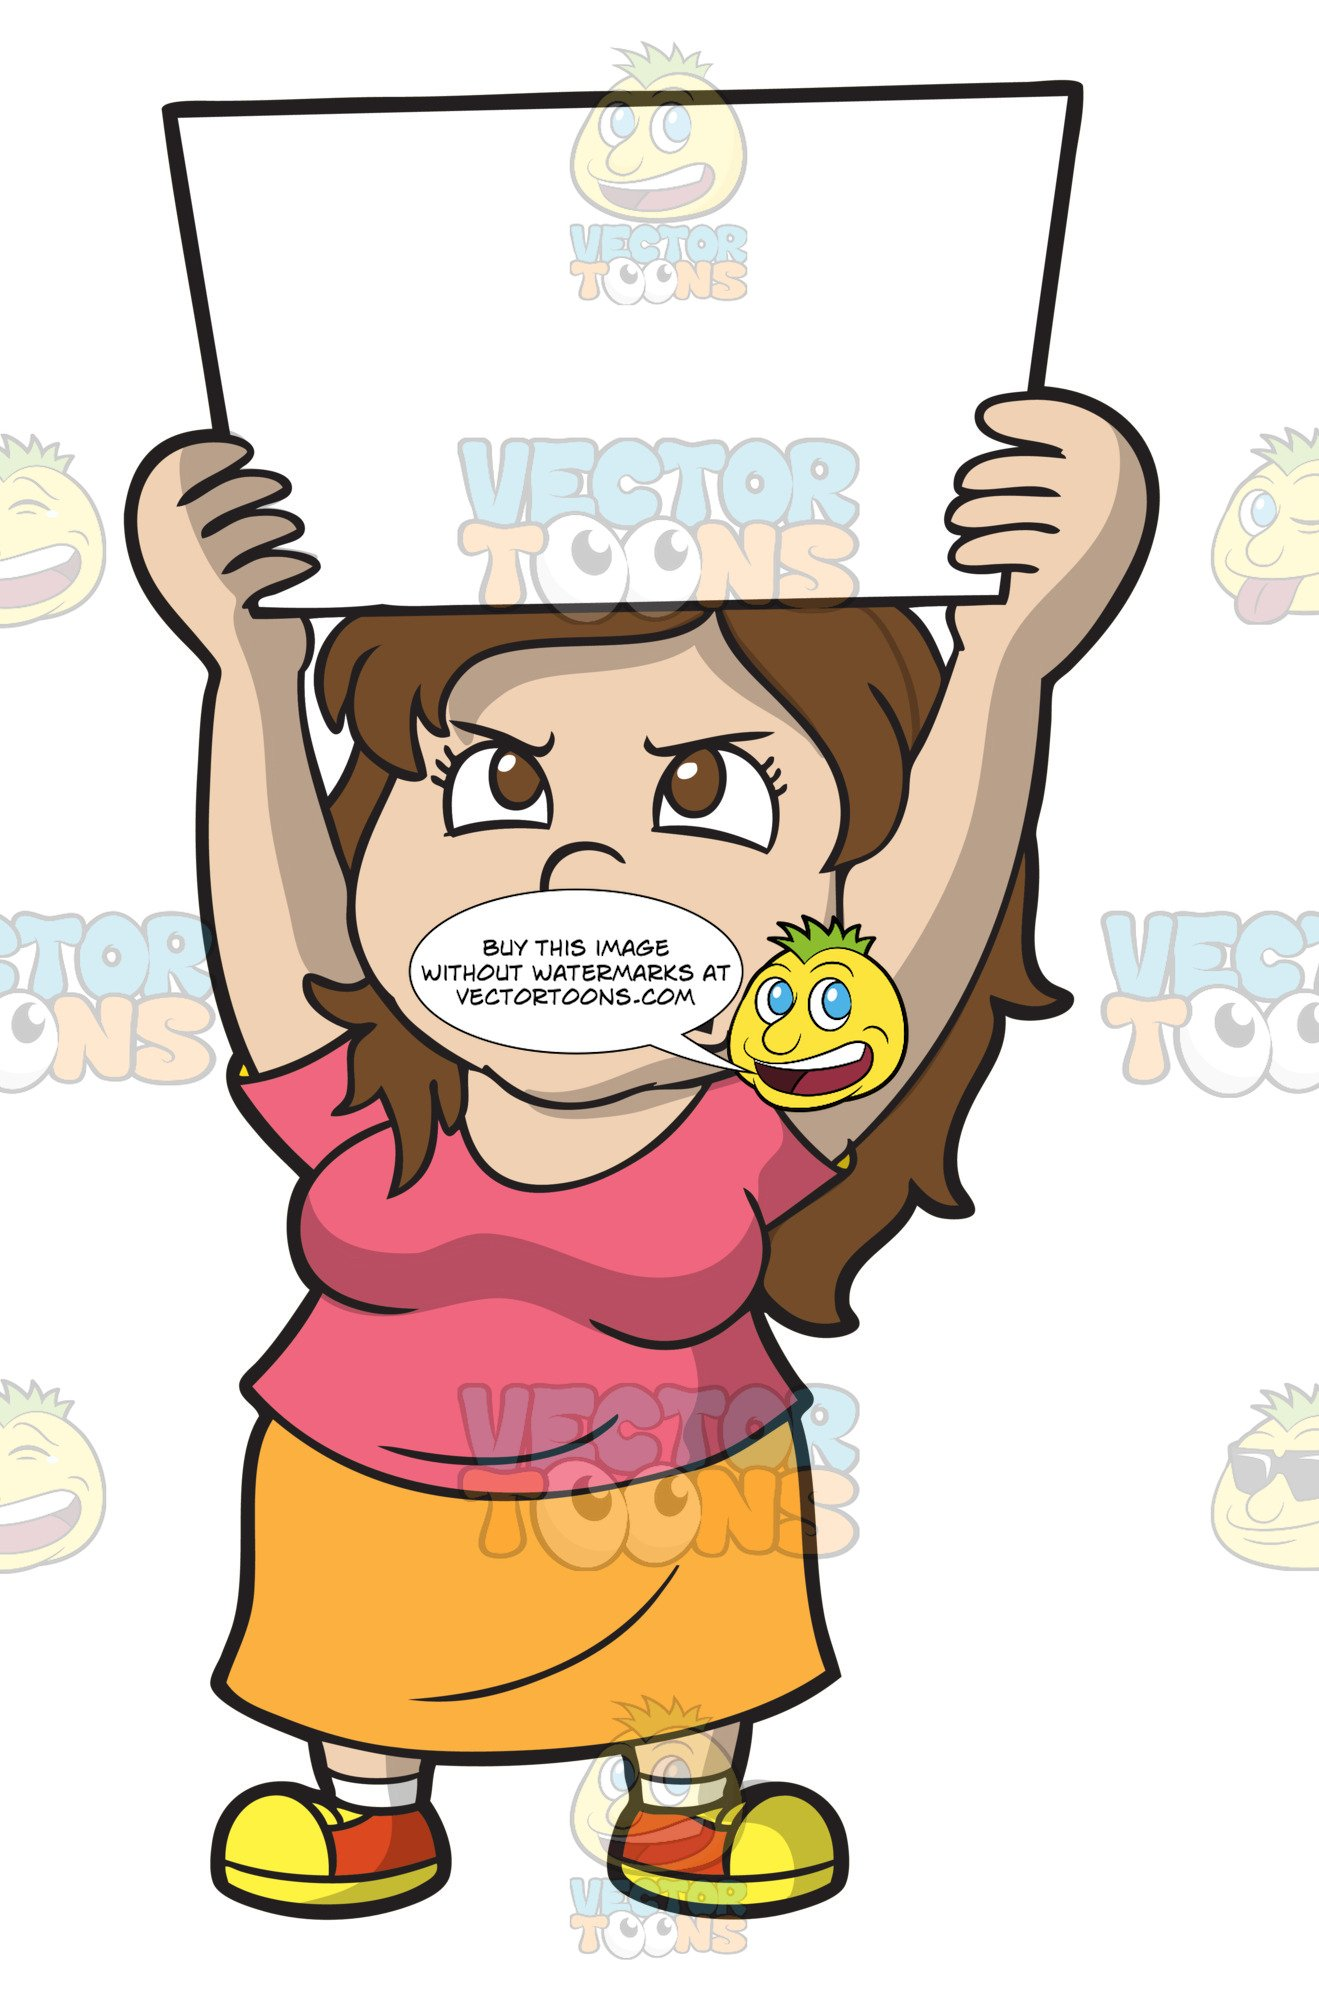 Women protesting clipart banner royalty free library An Angry Woman In Protest banner royalty free library